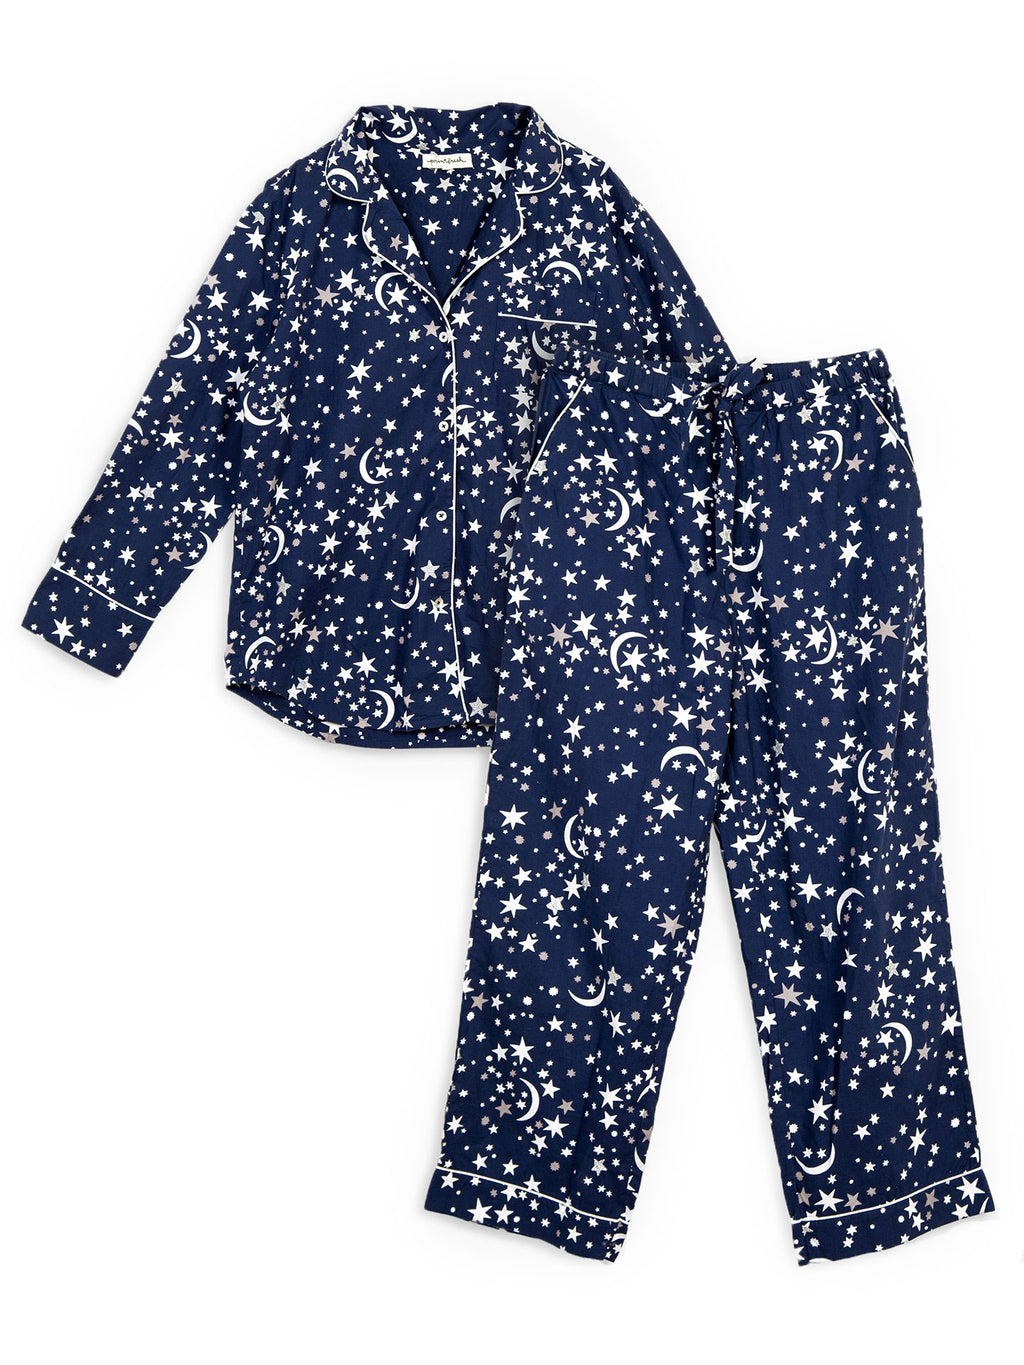 Celestial Skies Long Sleep Set